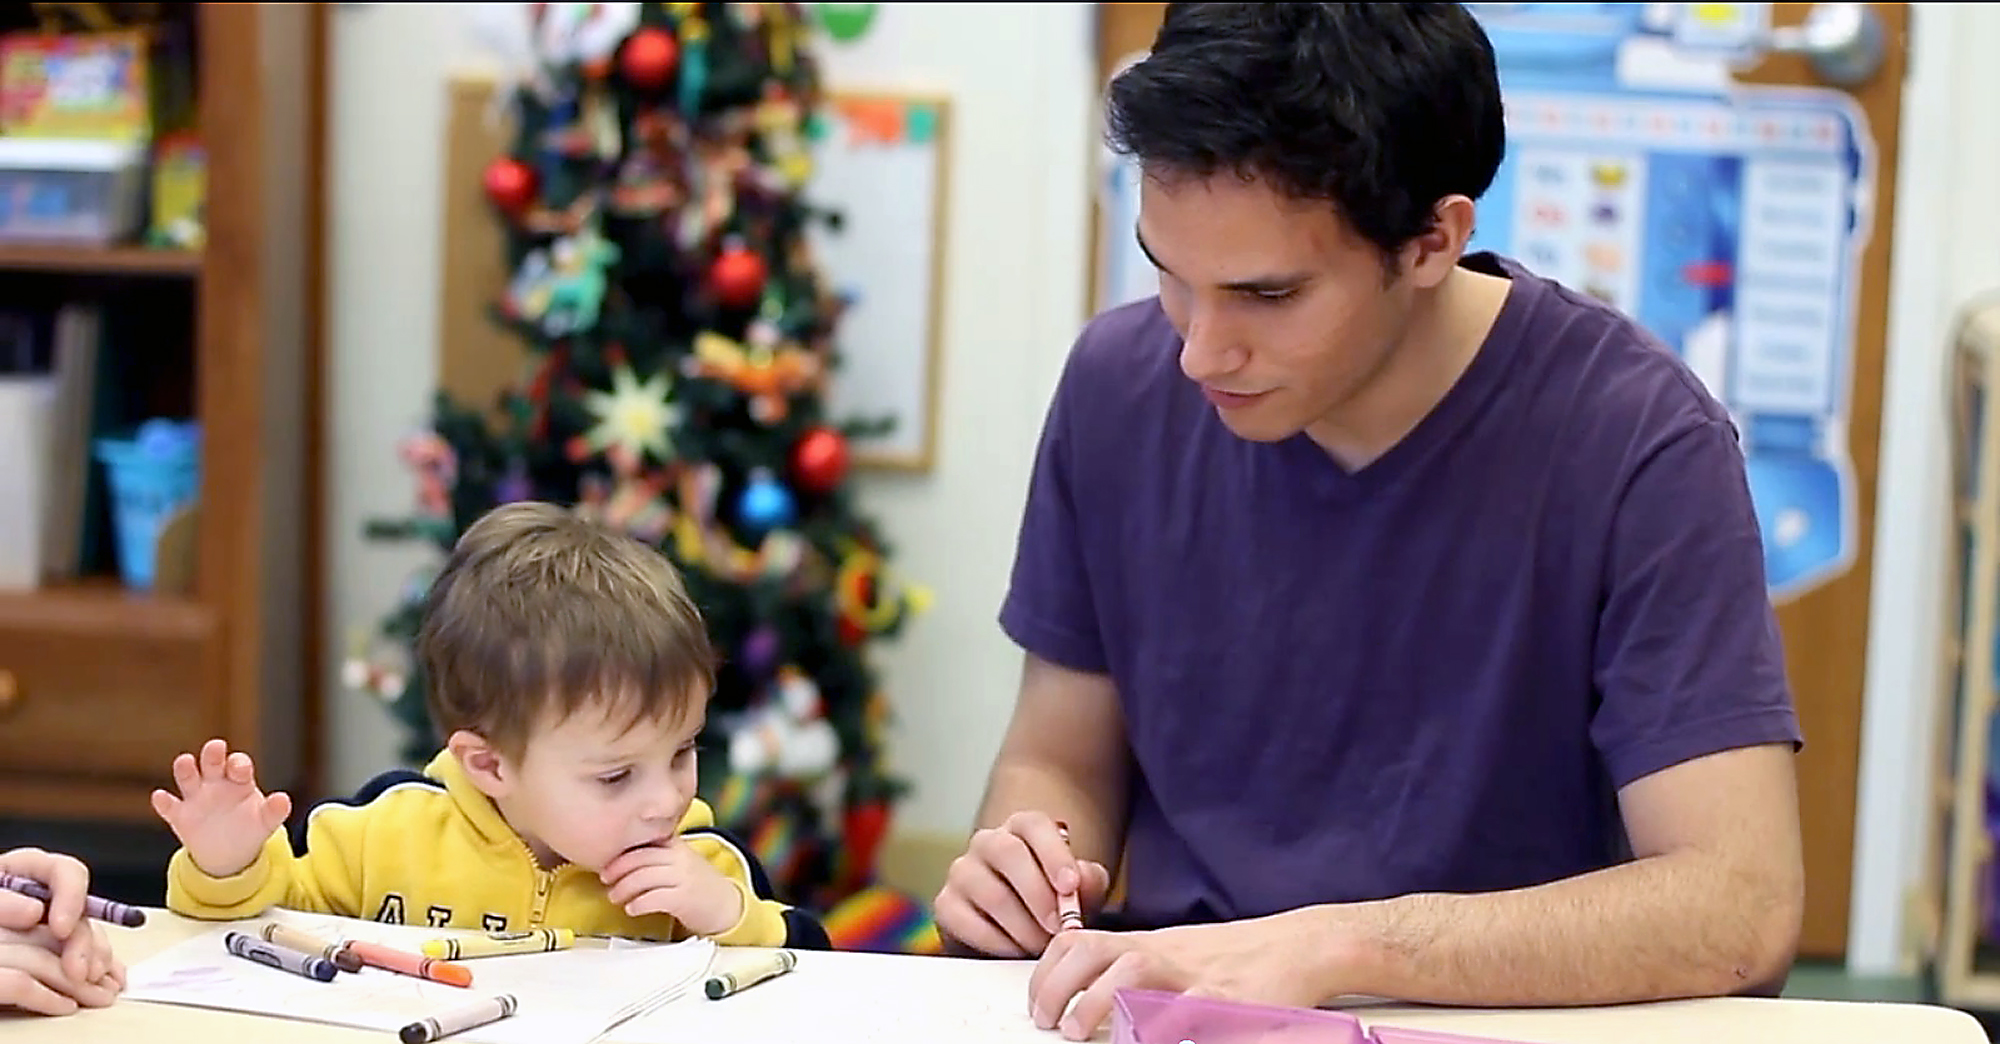 Bruno Marini, children's care manger, talks with a child at Alternatives in Anderson. (Submitted photo)